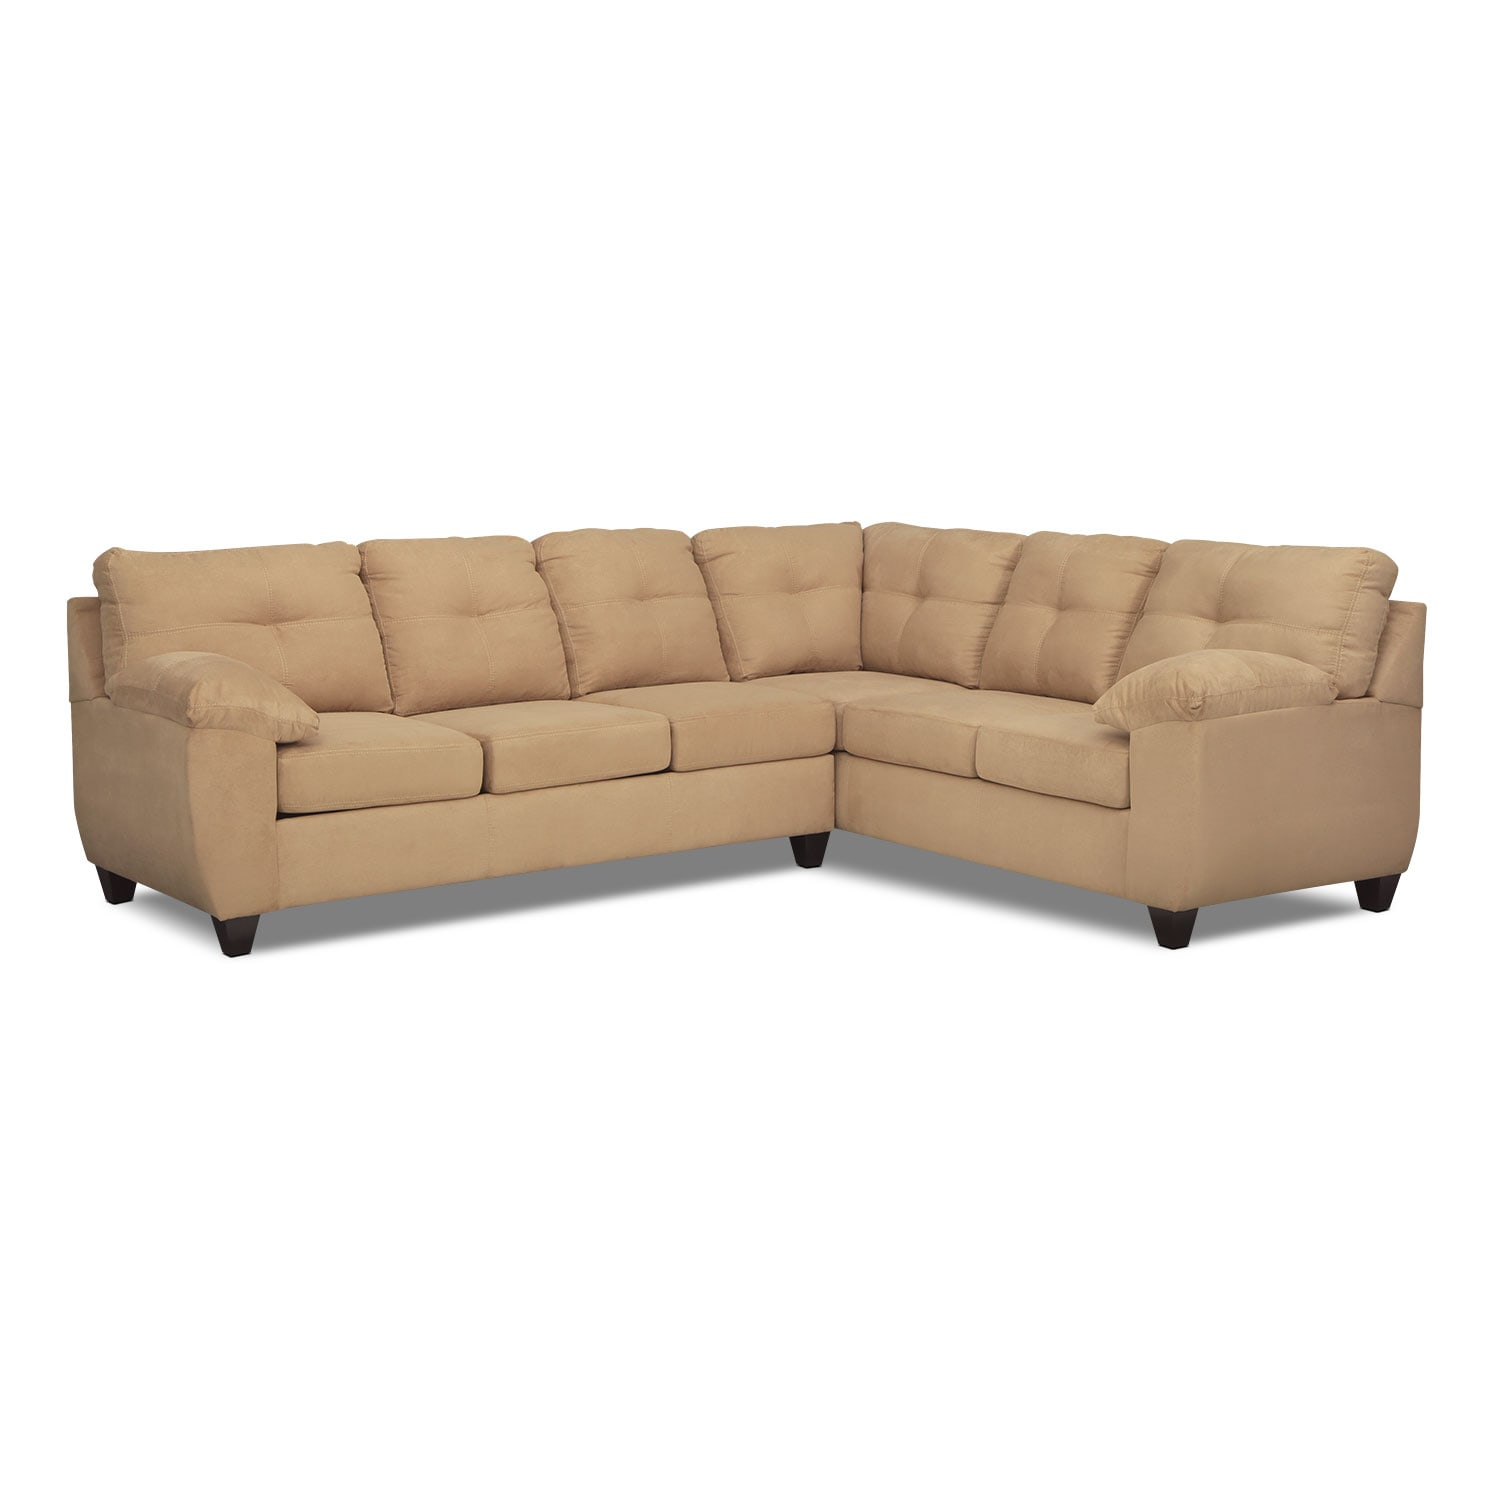 Rialto 2-Piece Sectional with Right-Facing Corner Sofa - Camel